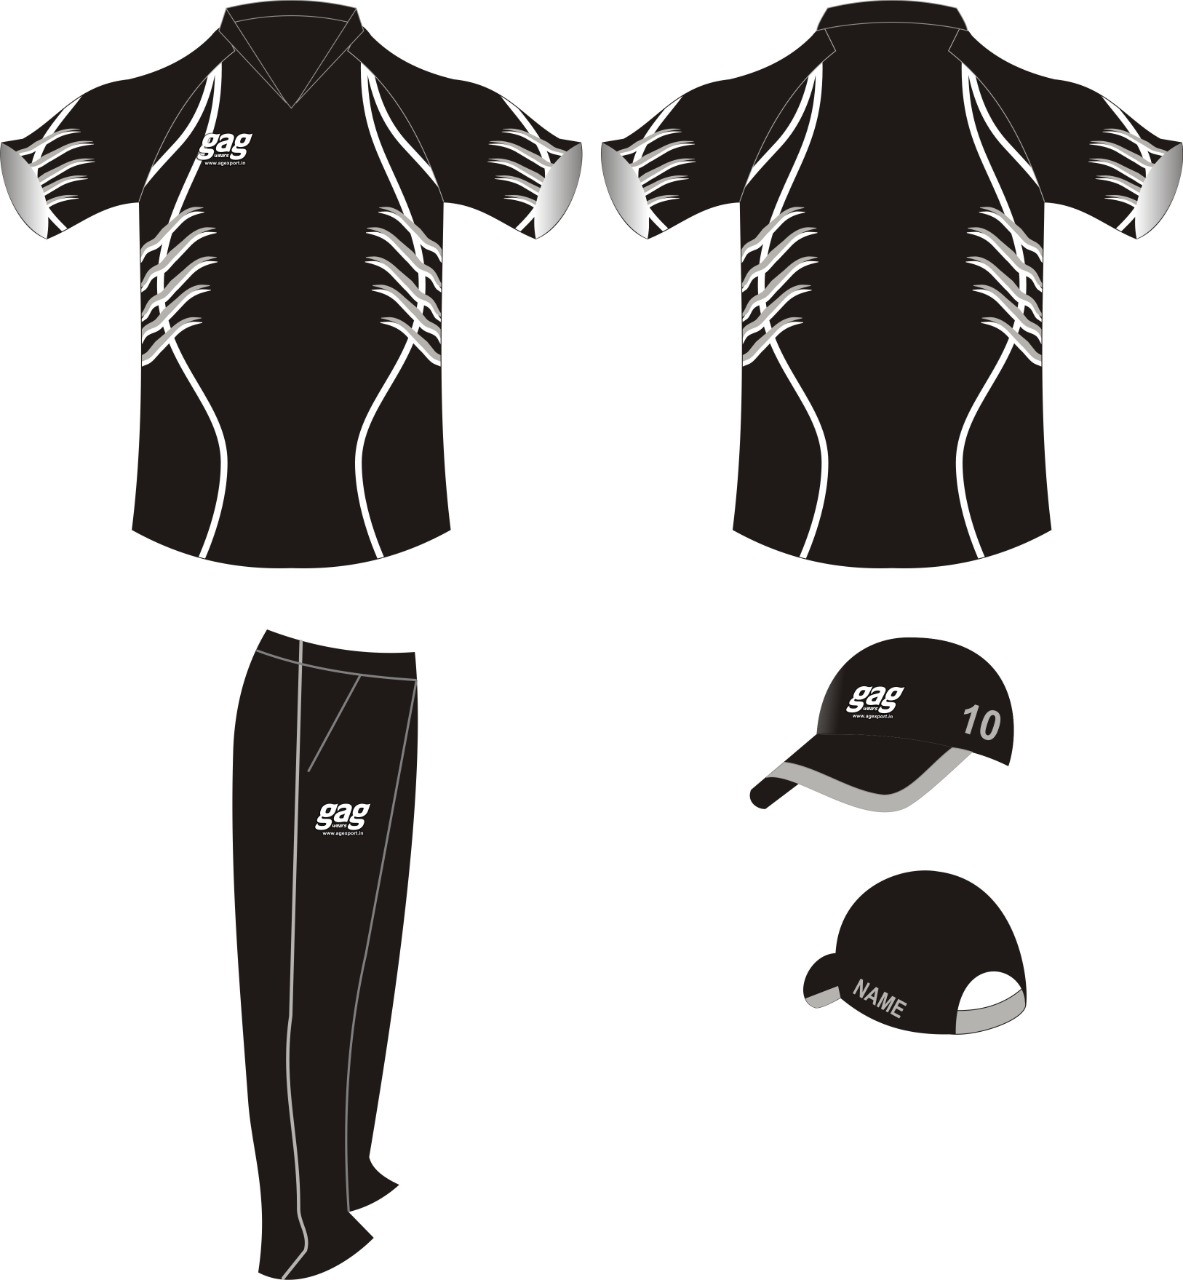 Custom Cricket Jerseys Manufacturers in Jalandhar in South Korea